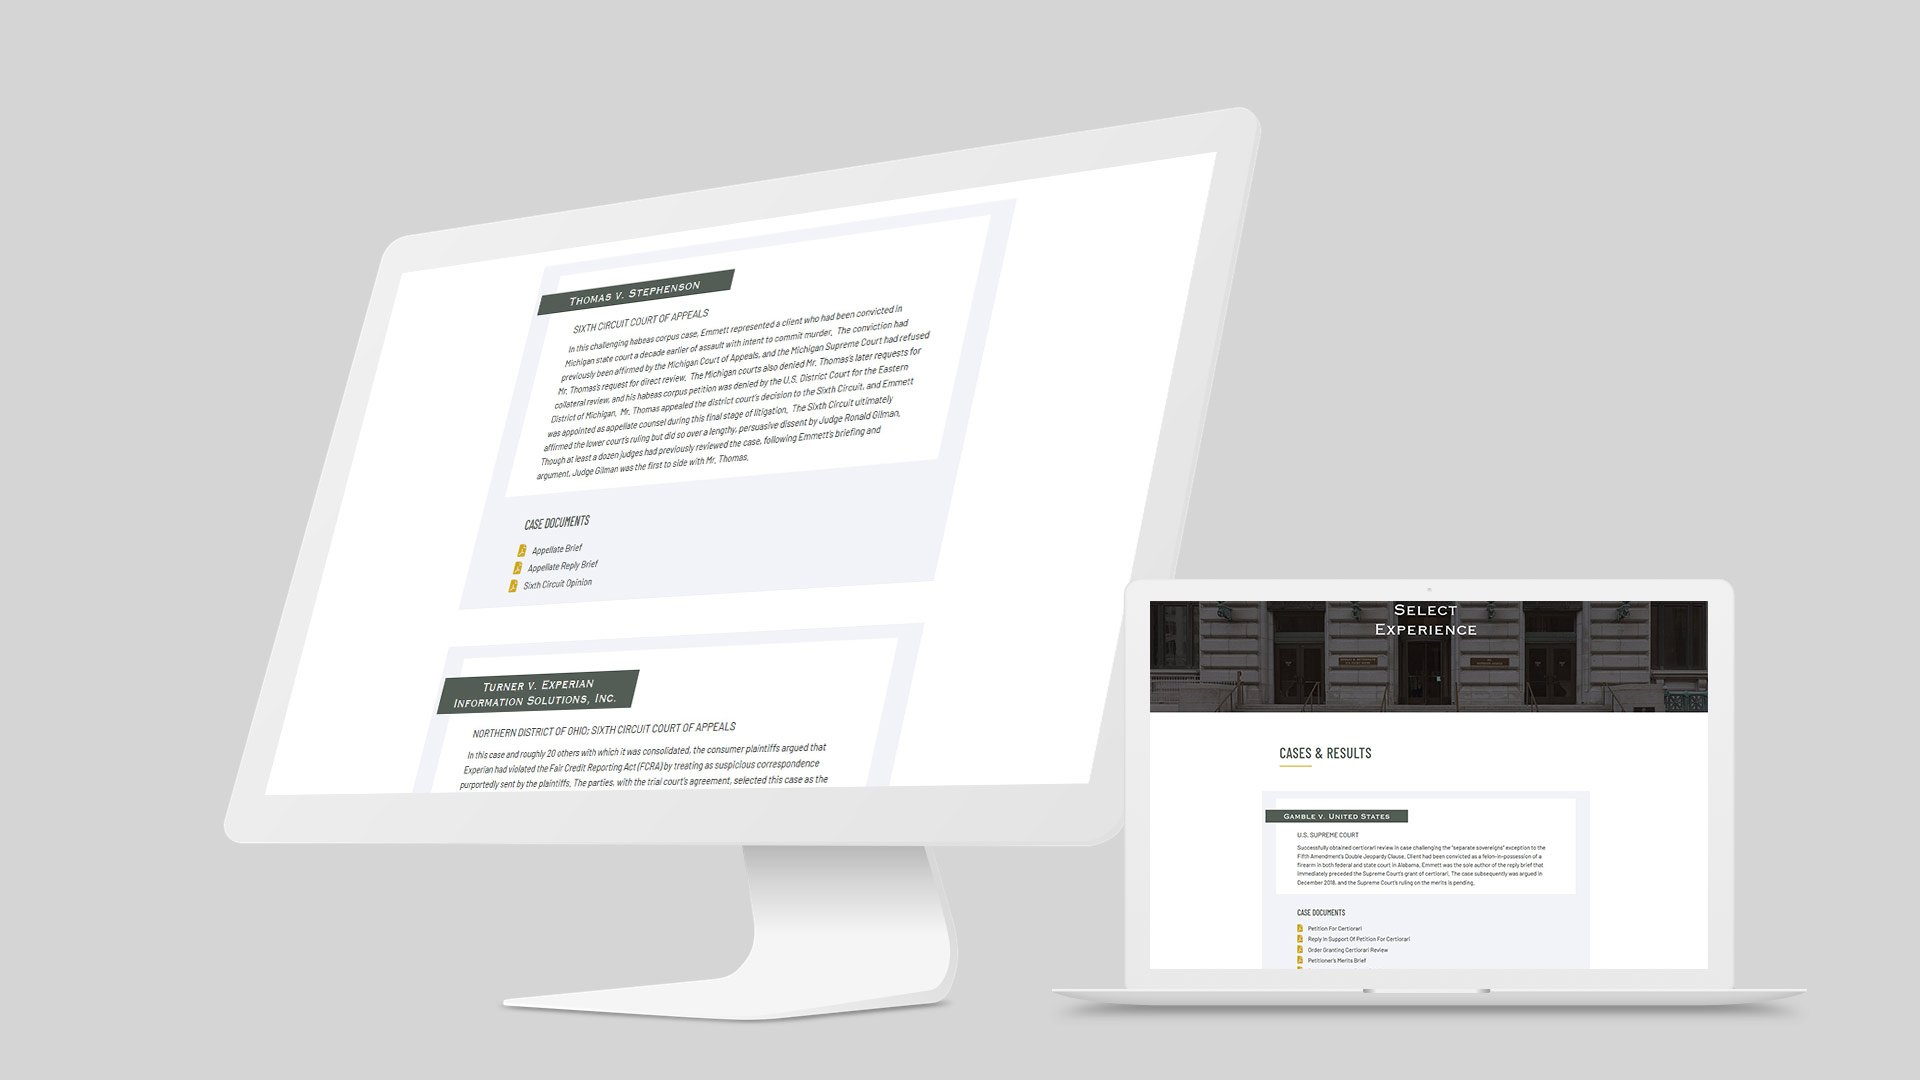 law firm website design mockup 4